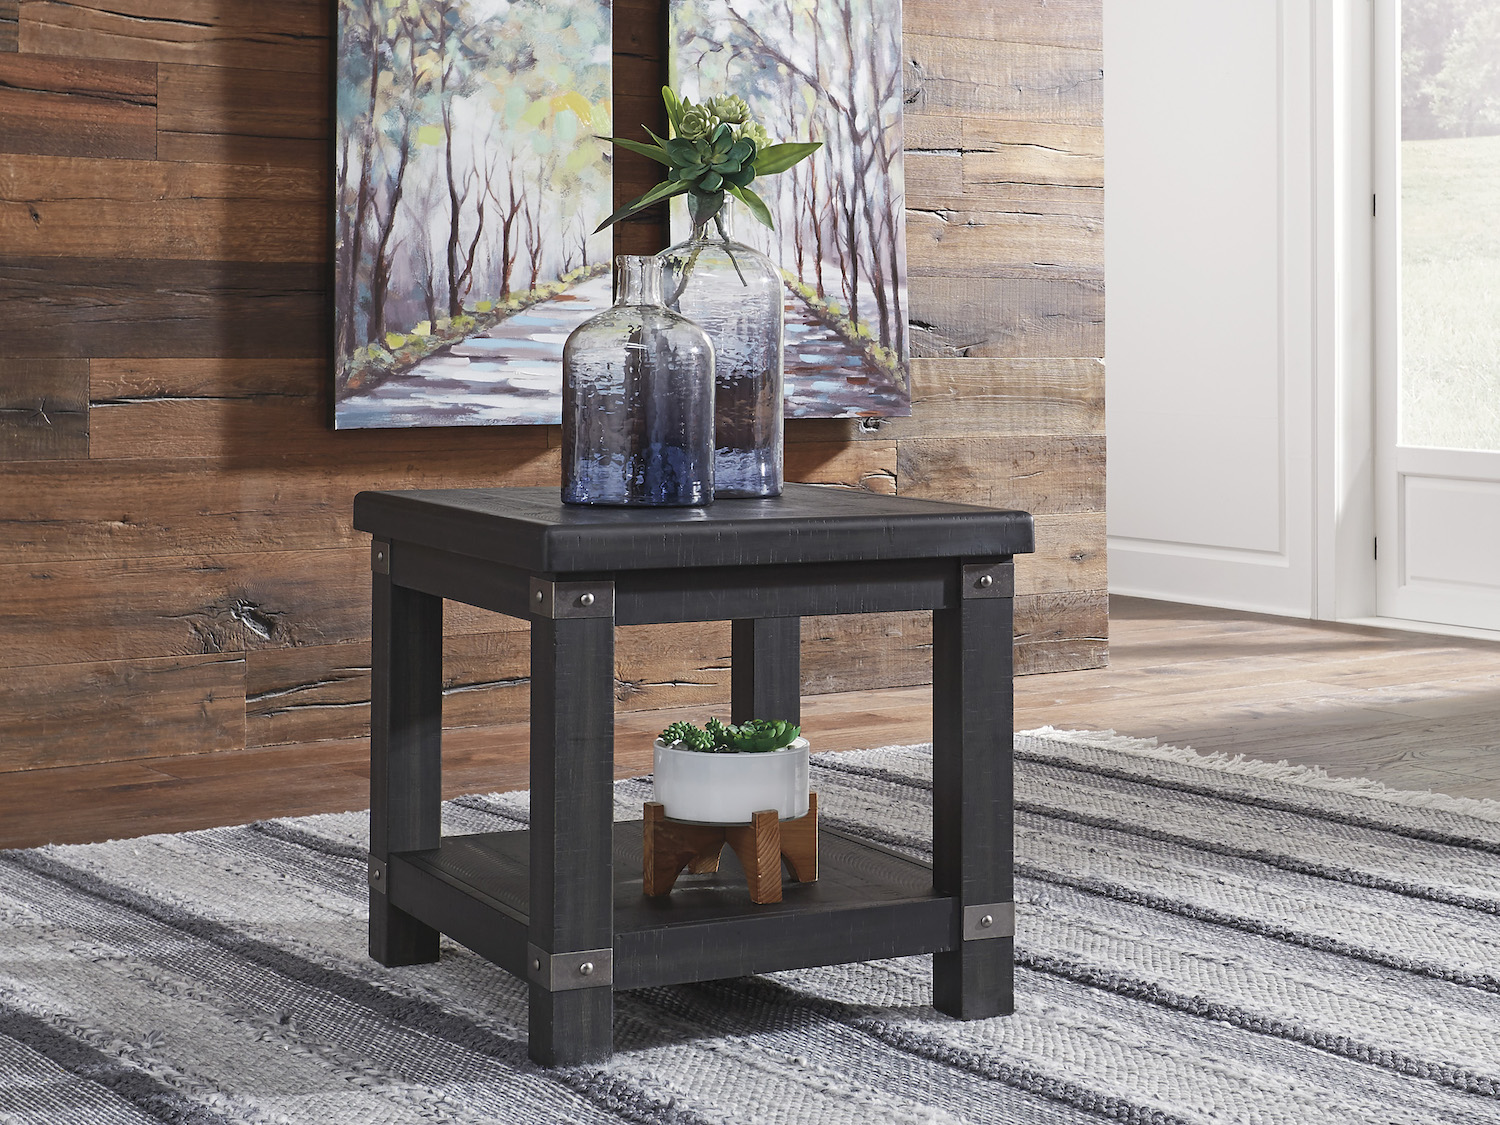 Delmar End Table, T902, Accent/End Tables, Delmar End Table from Ashley by Midha Furniture serving Brampton, Mississauga, Etobicoke, Toronto, Scraborough, Caledon, Cambridge, Oakville, Markham, Ajax, Pickering, Oshawa, Richmondhill, Kitchener, Hamilton, Cambridge, Waterloo and GTA area